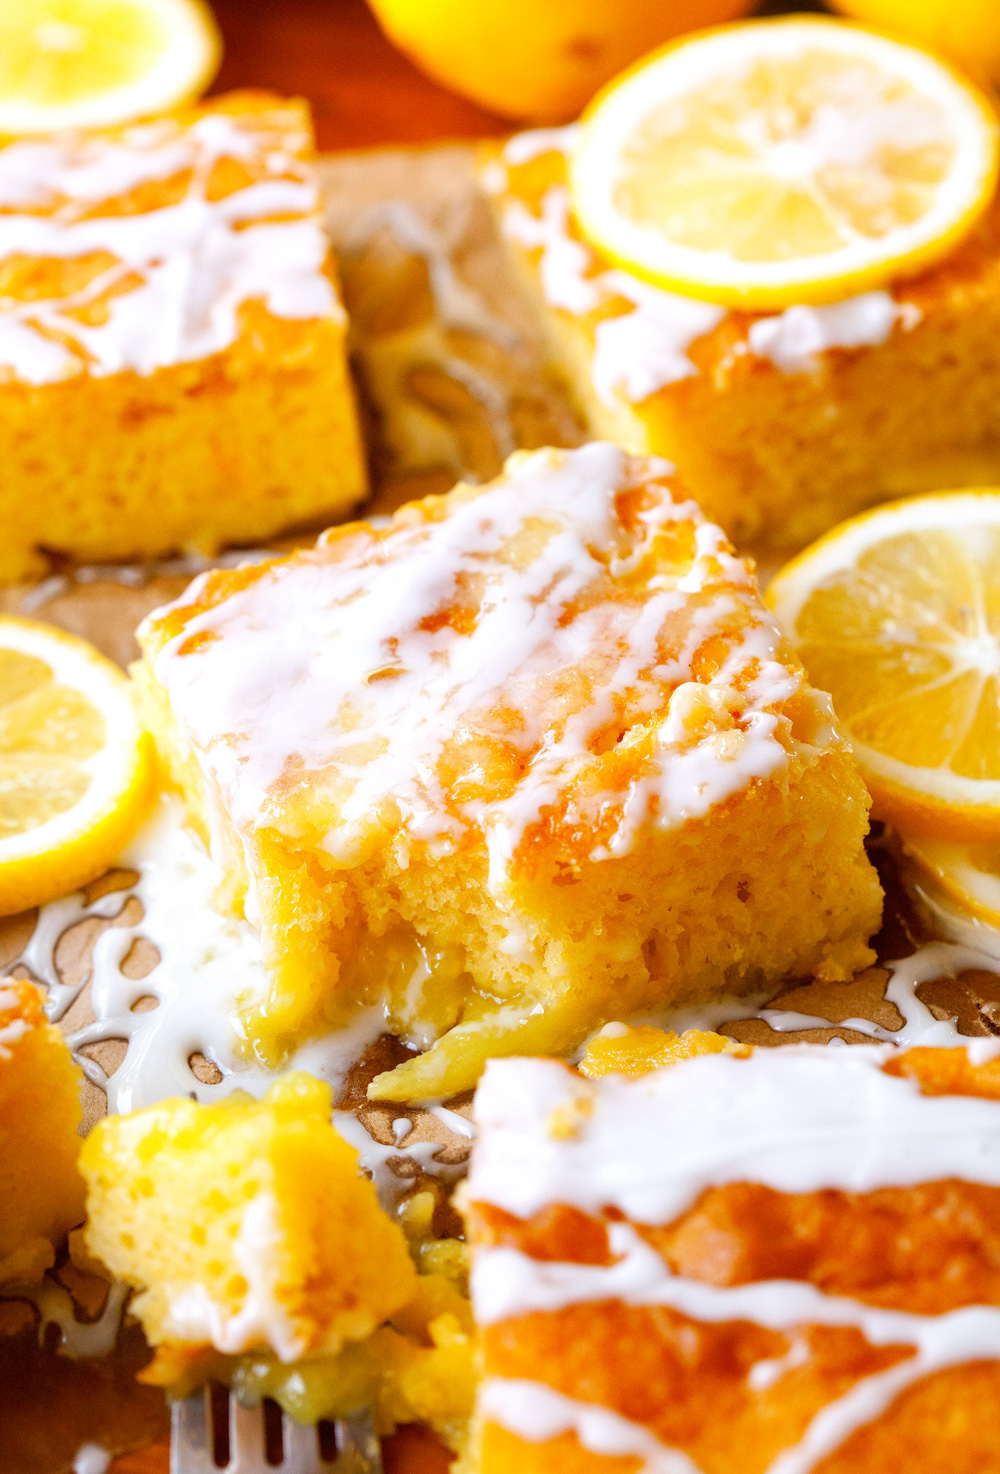 Glazed Lemon Pudding Cake